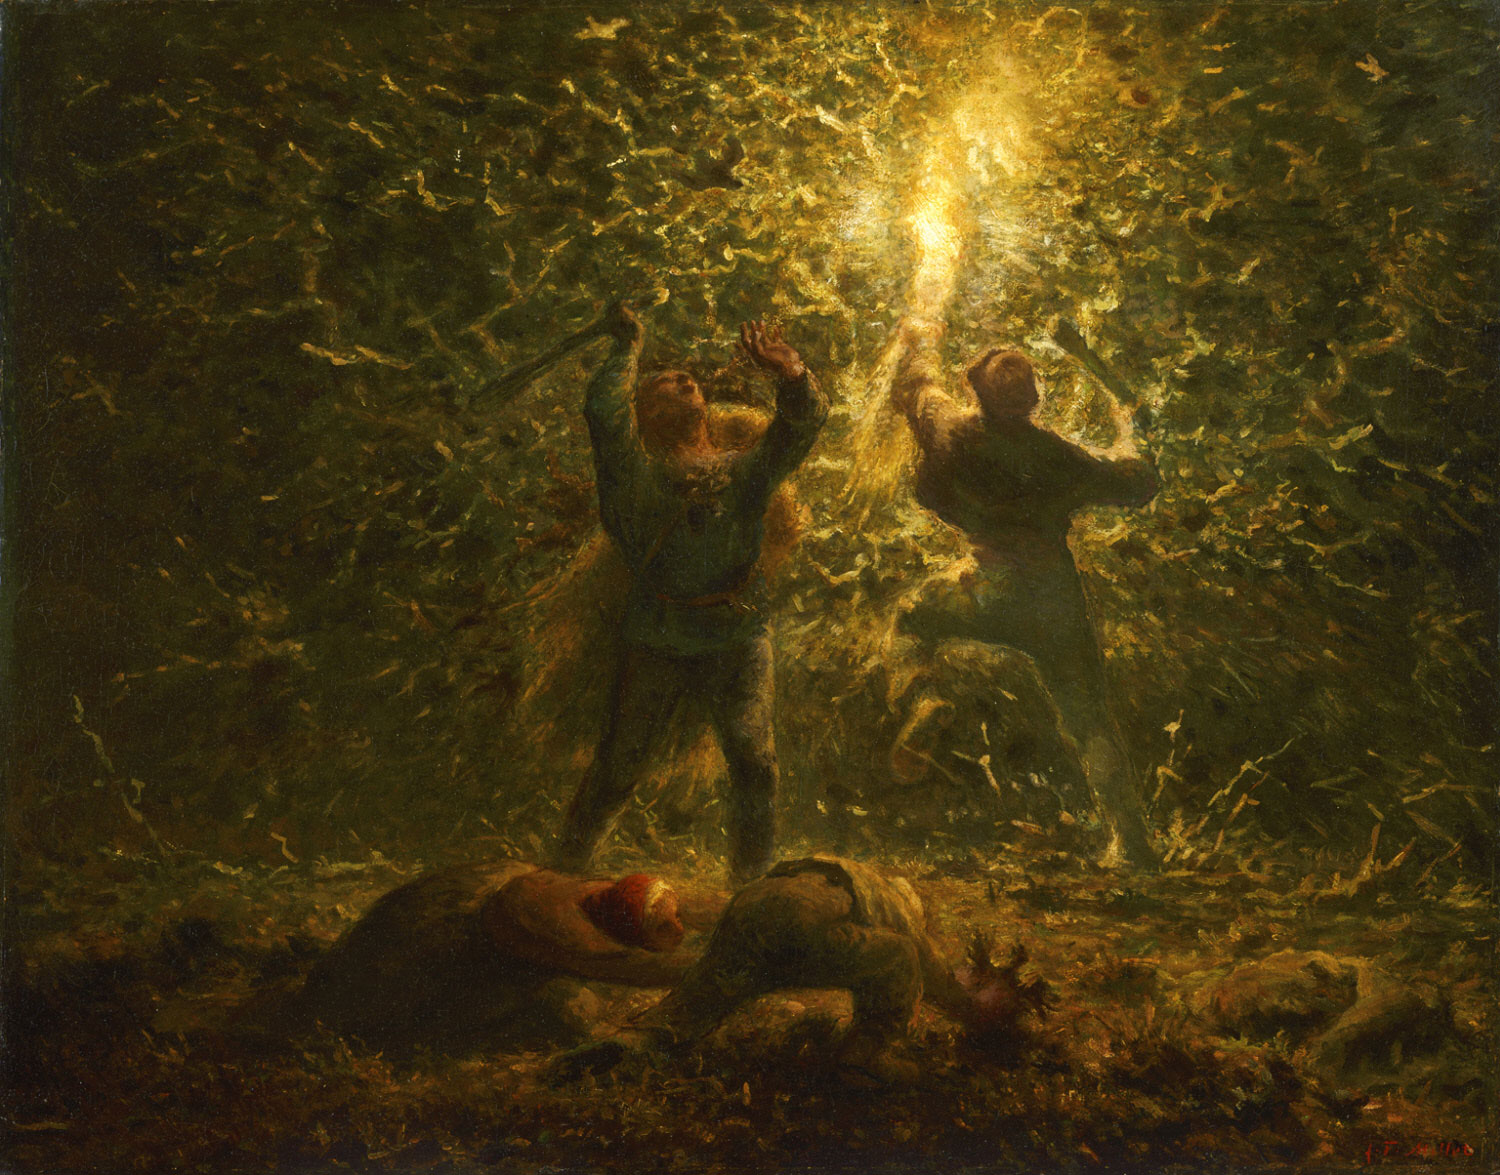 Millet,_Jean-François_II_-_Hunting_Birds_at_Night.jpg